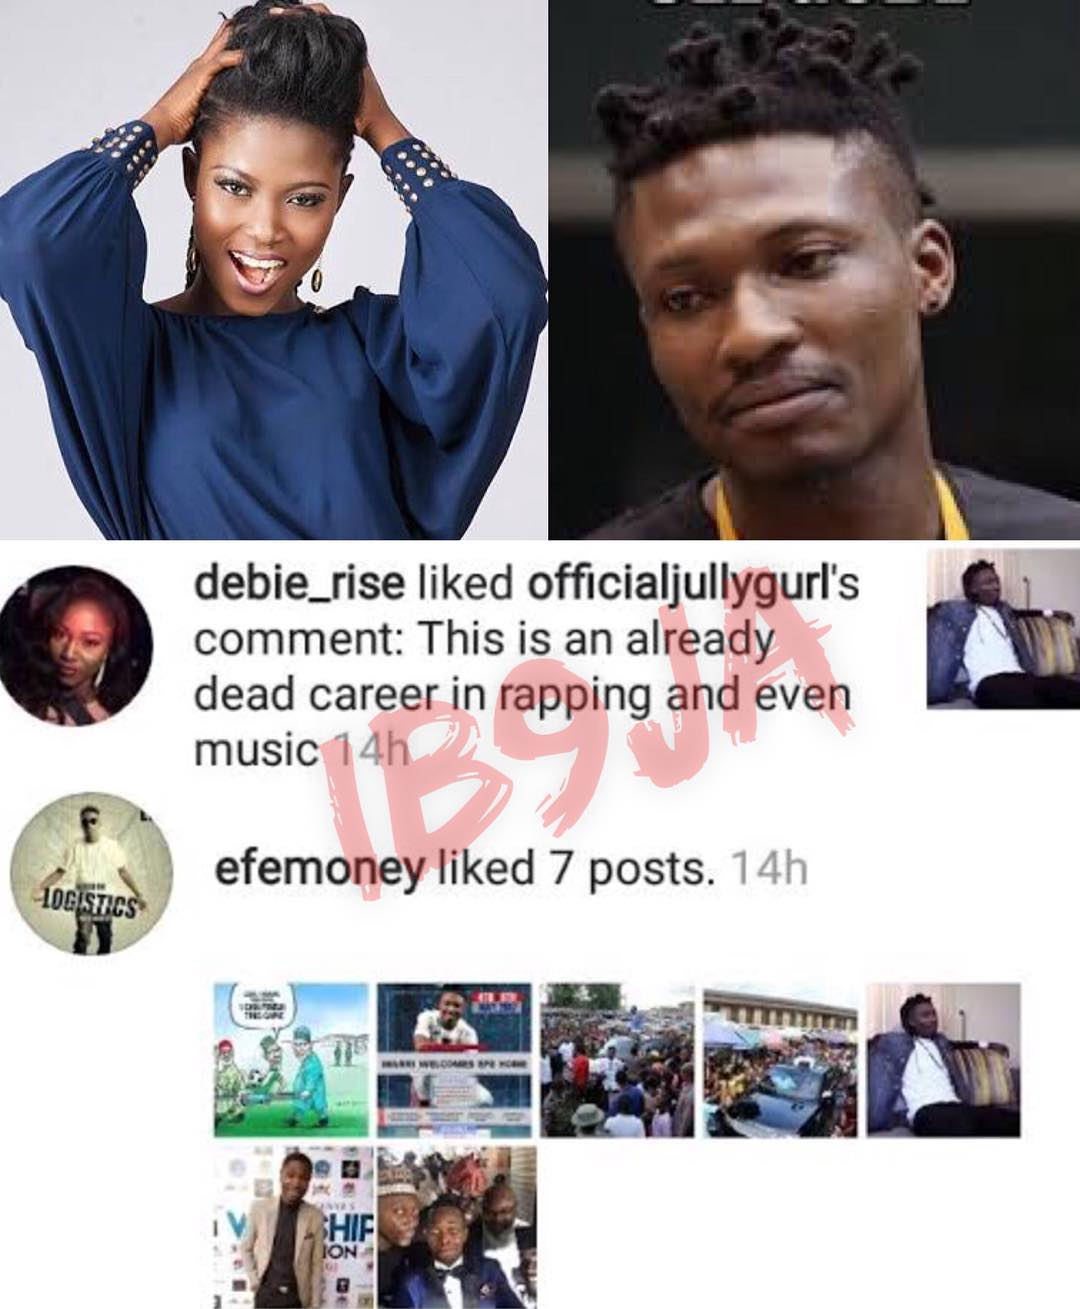 #BBNaija Debie-rise confirms that Efe's music career is already dead and buried (Photo)